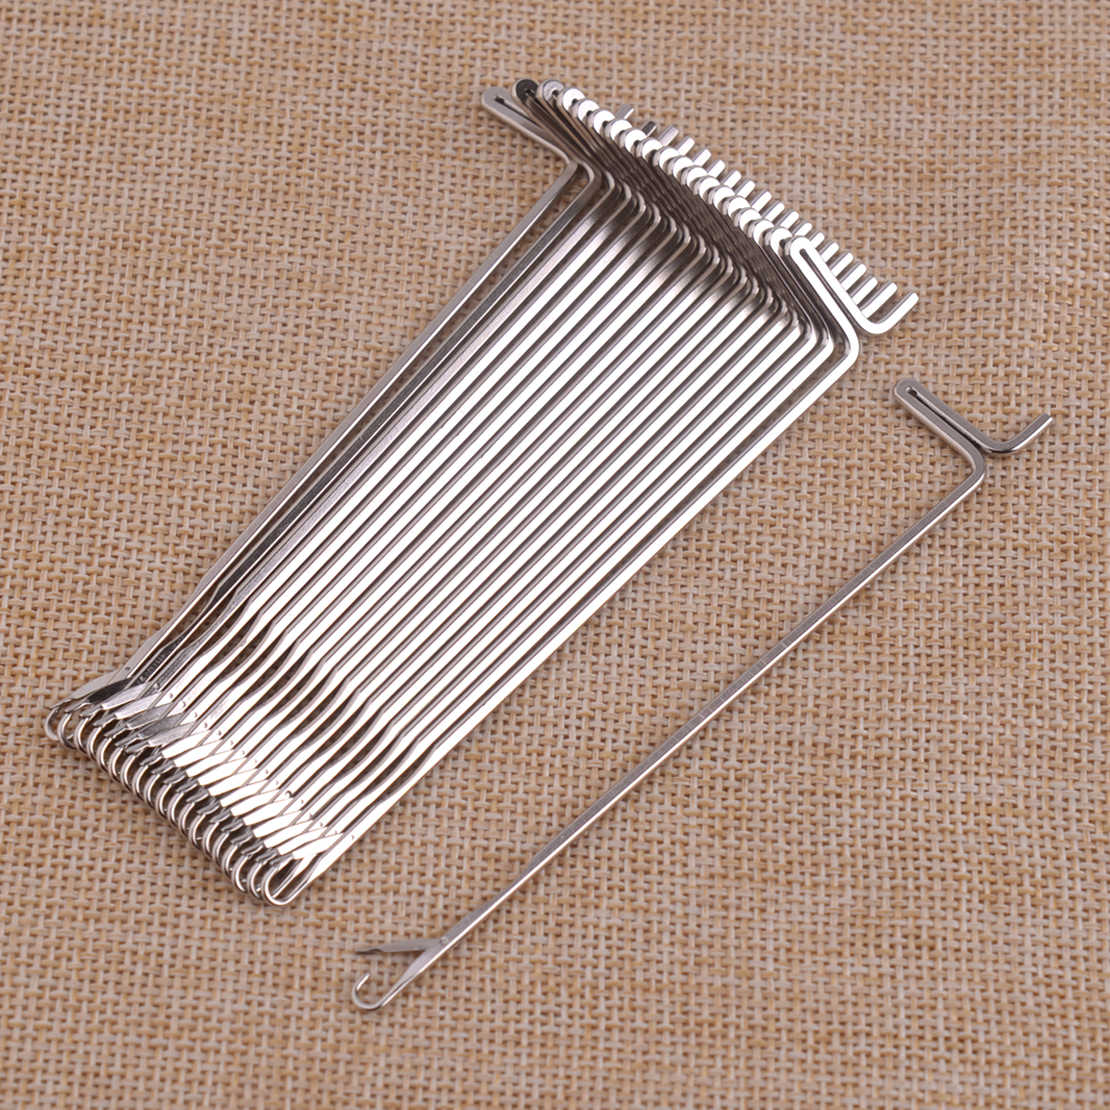 6mm Latch Hook Tool For MK70 HK160 Singer Silver Reed Knitting Machine